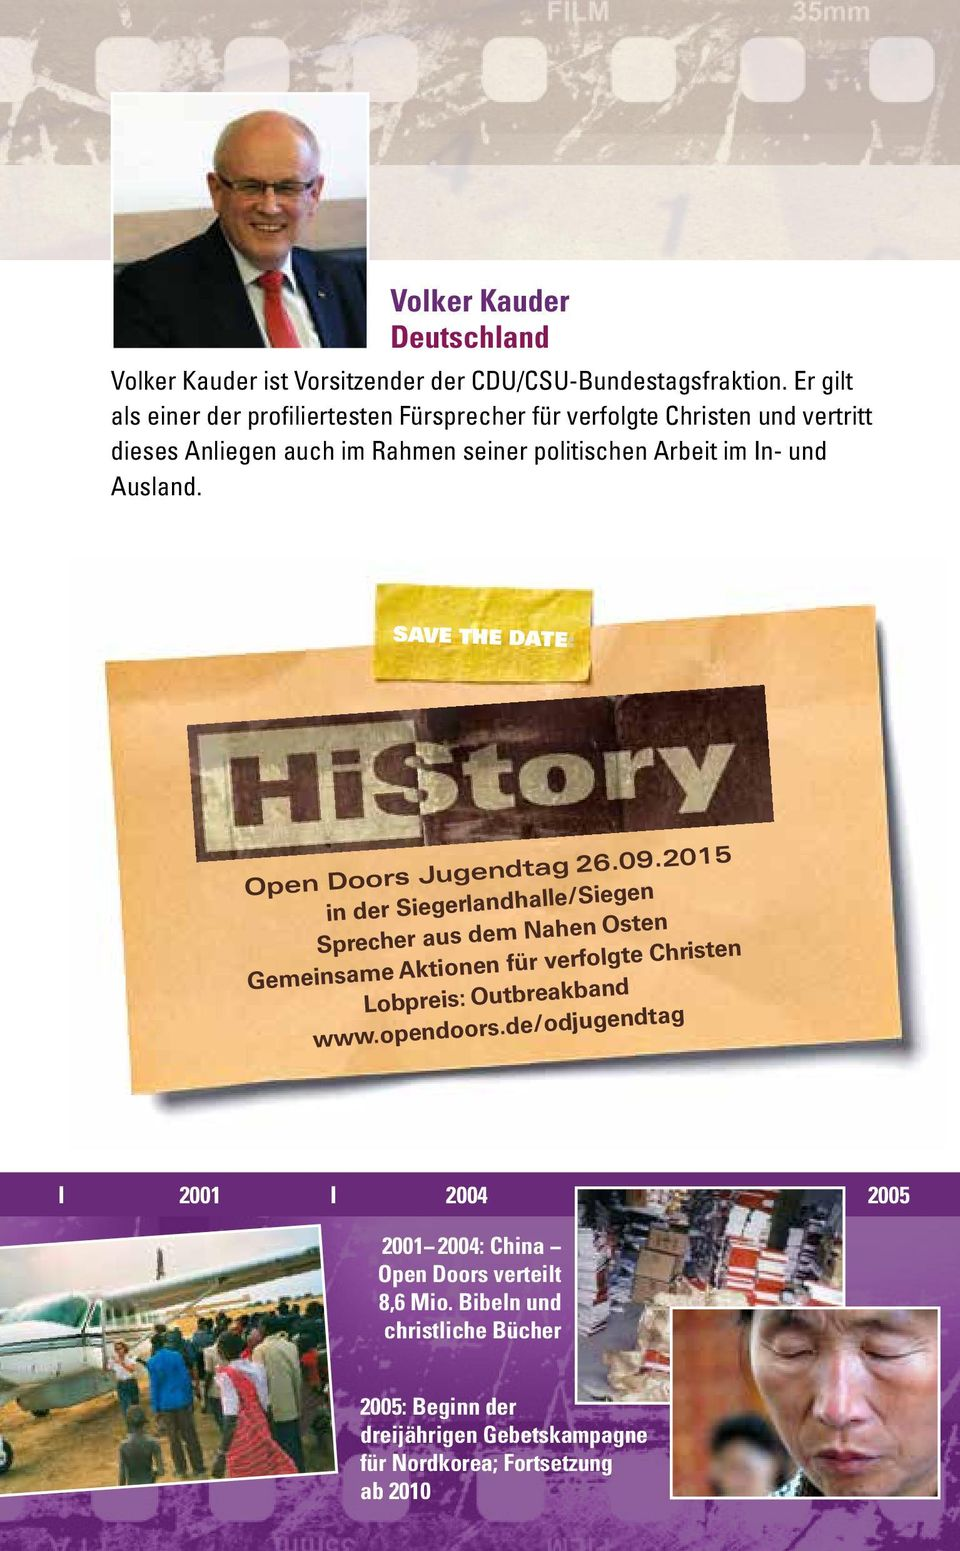 Ausland. Save the Date: Open Doors Jugendtag 26.09.